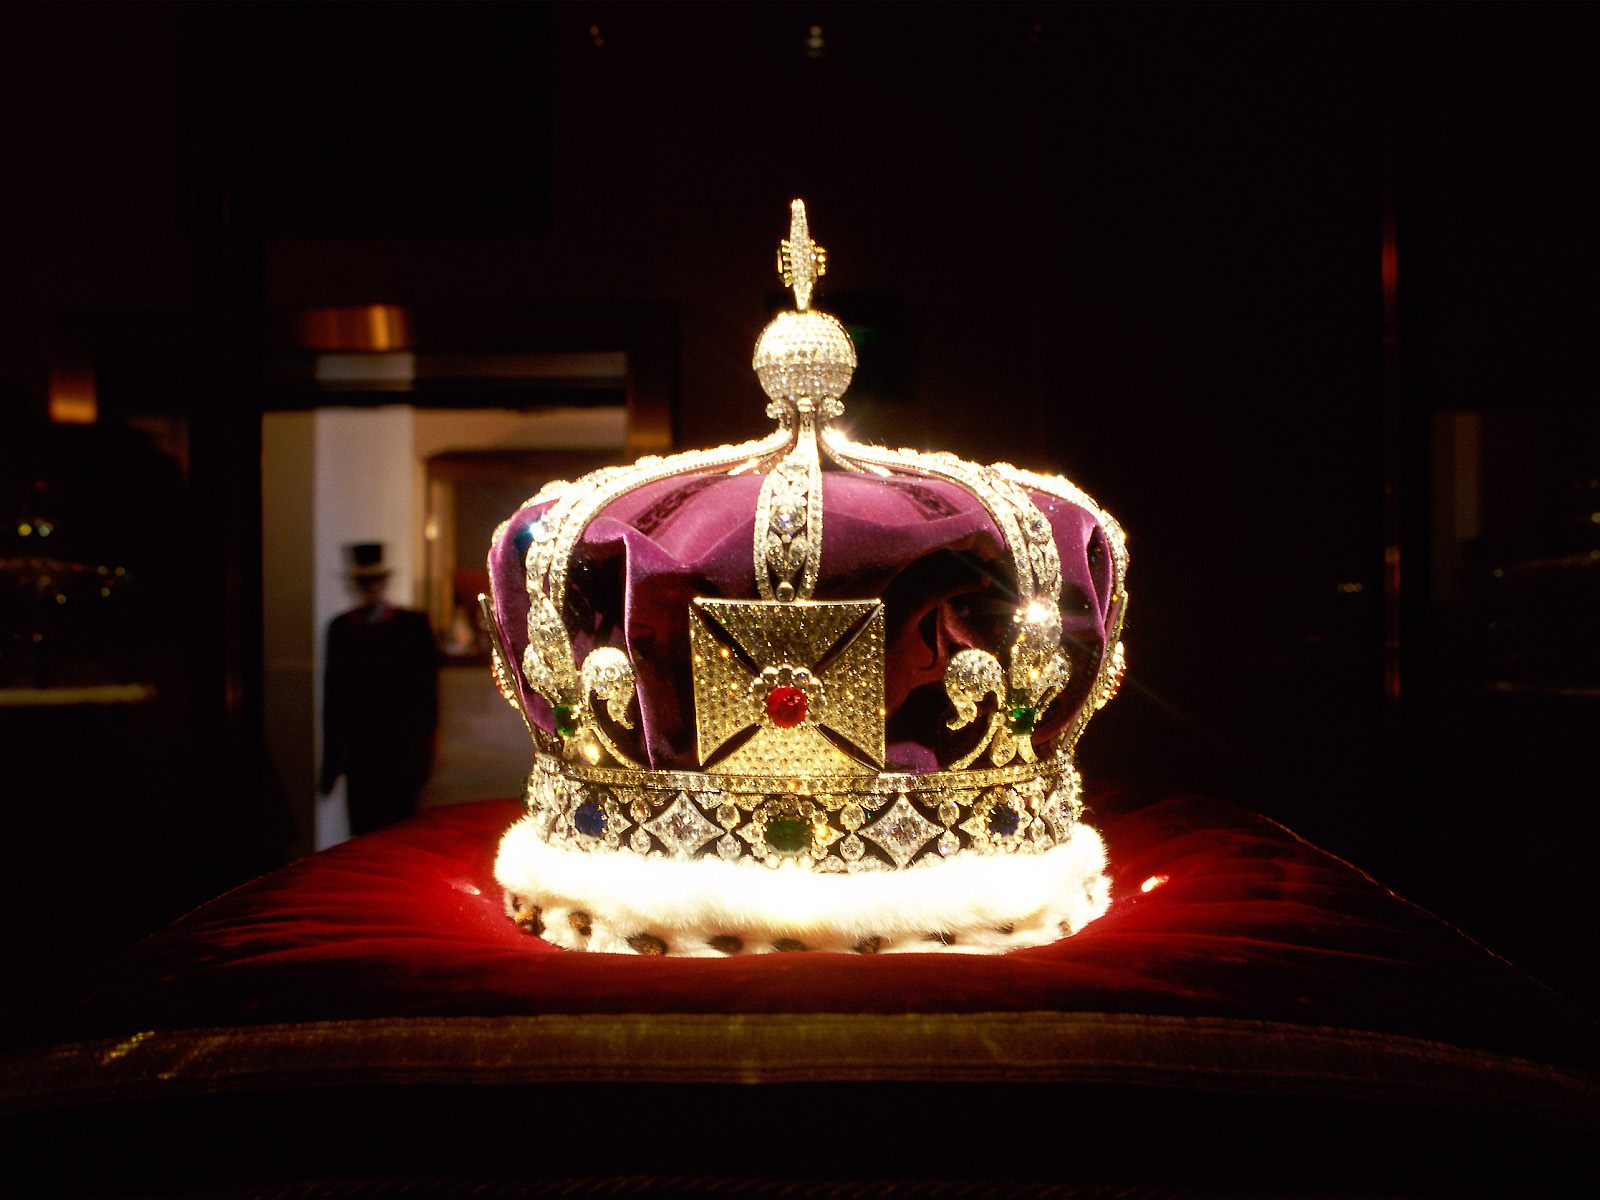 Crown Jewels at Tower of London